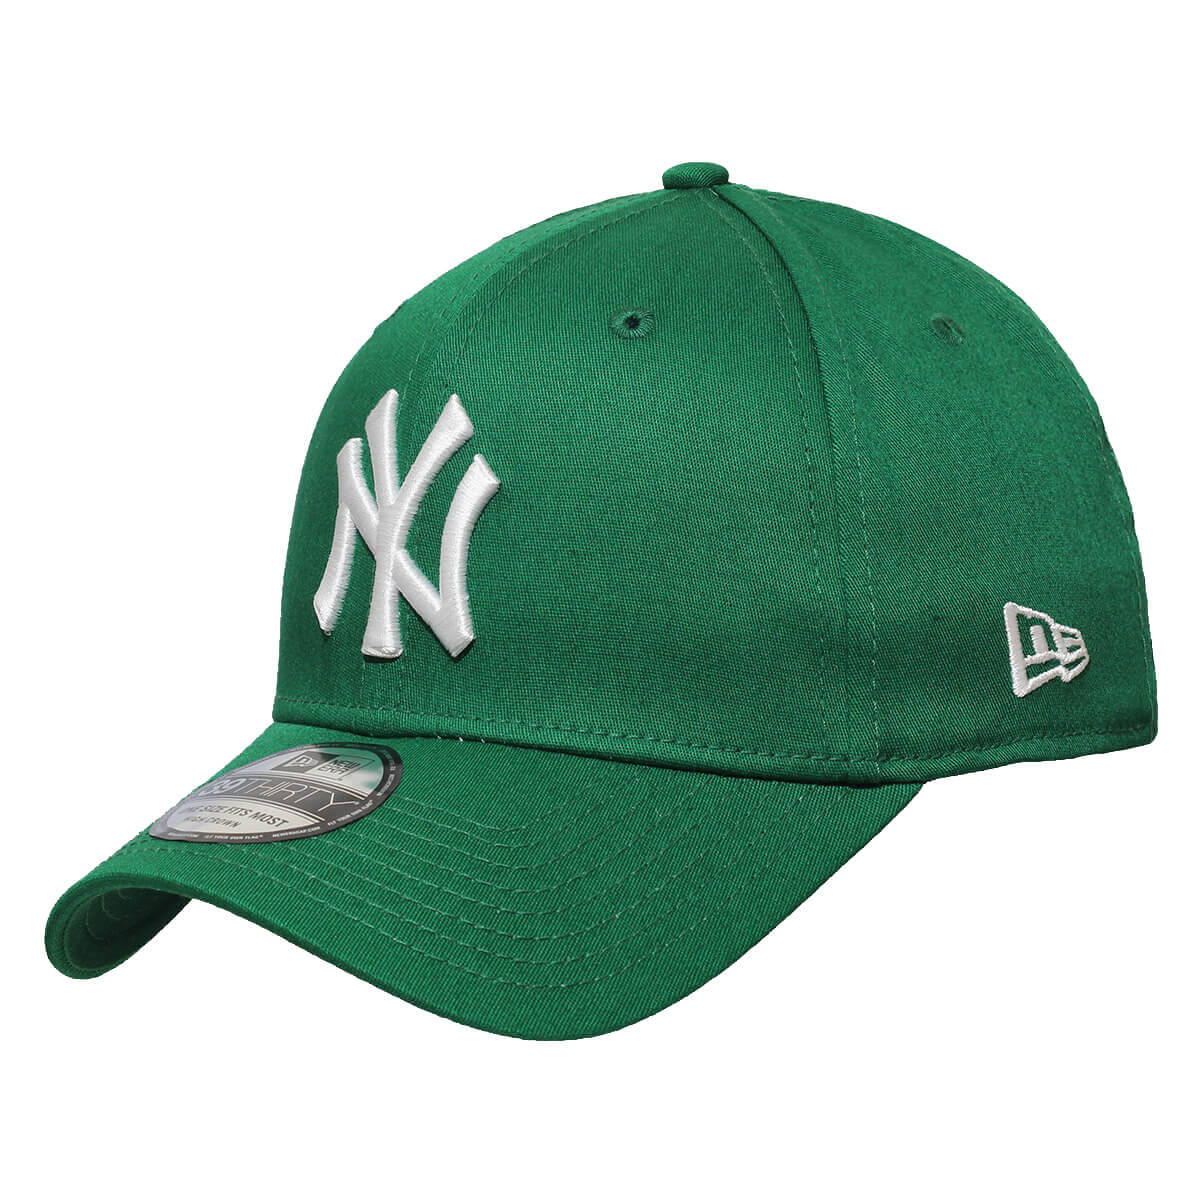 Boné New Era Aba Curva 3930 MLB NY Yankees Colors Verde